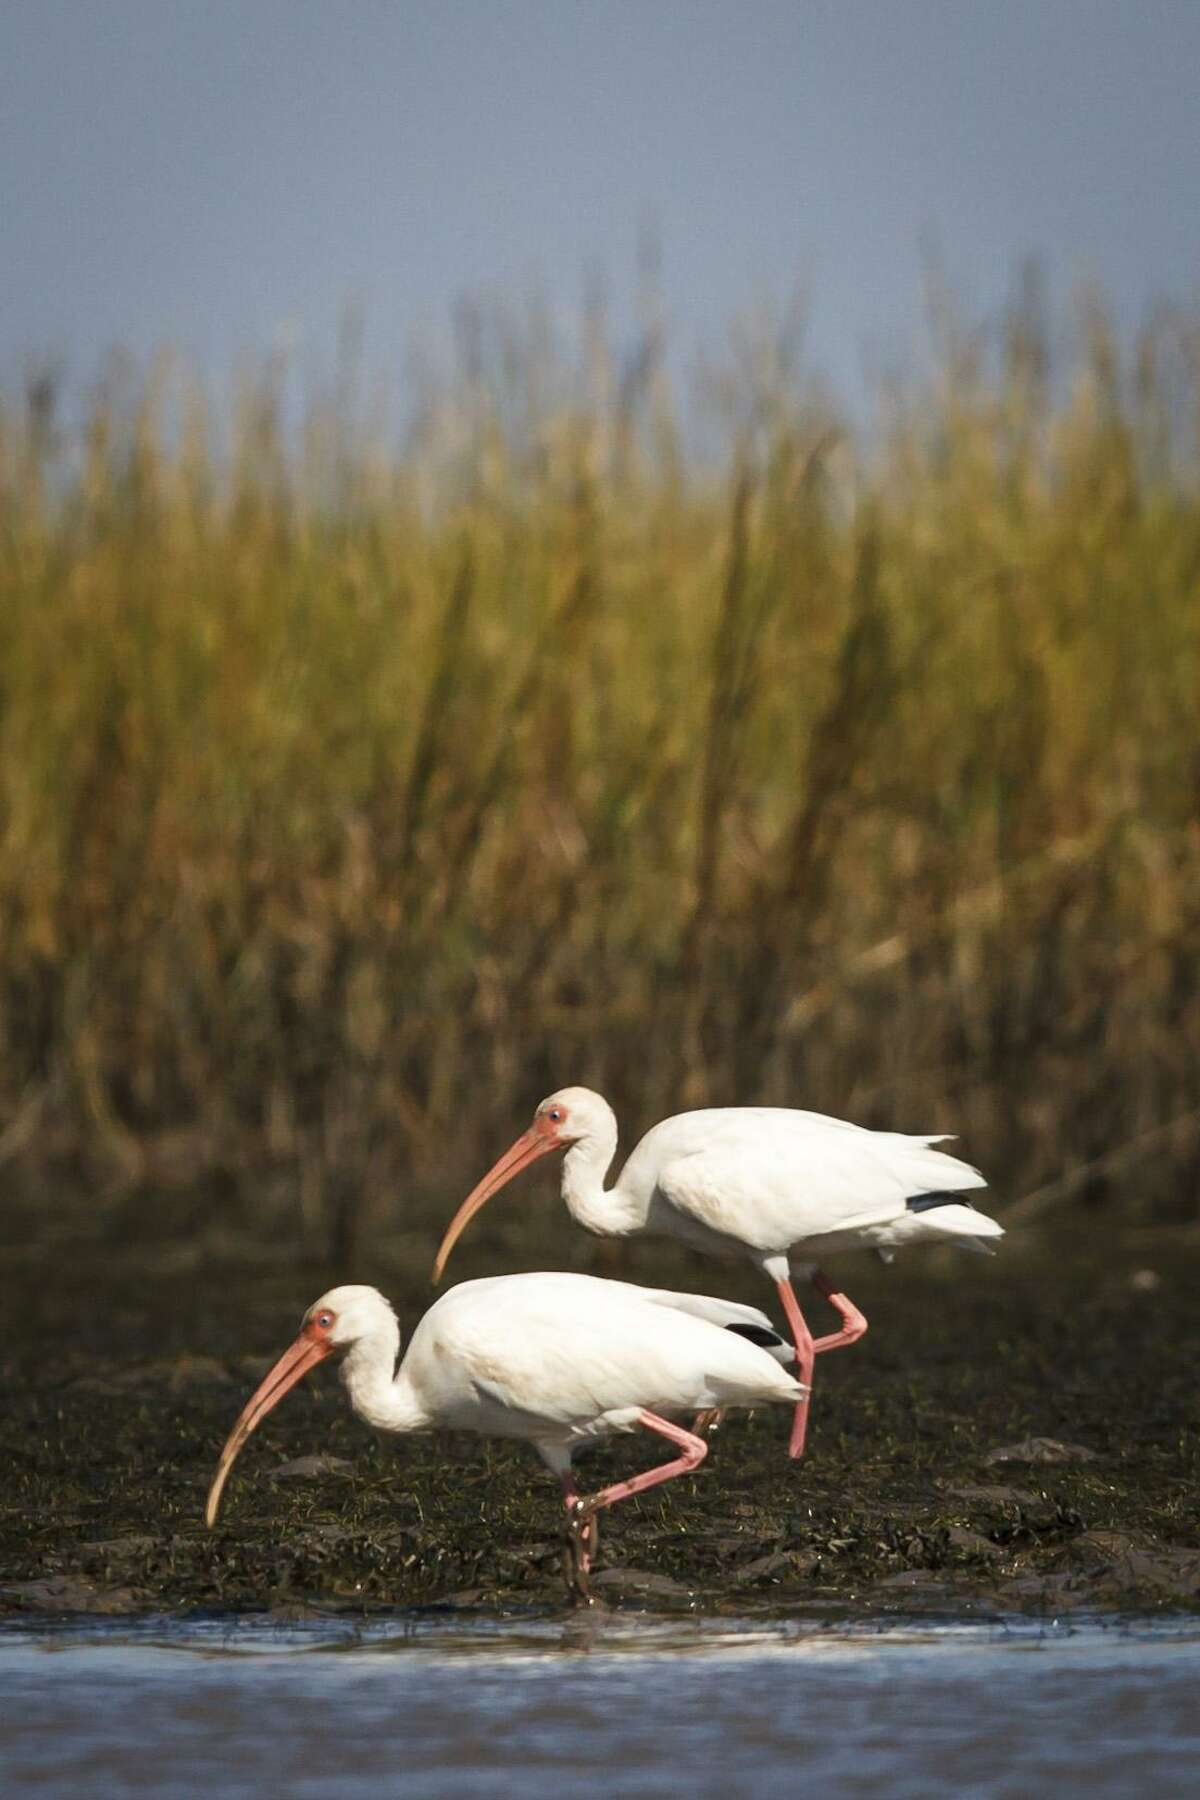 White Ibis search for food while kayakers paddle by.